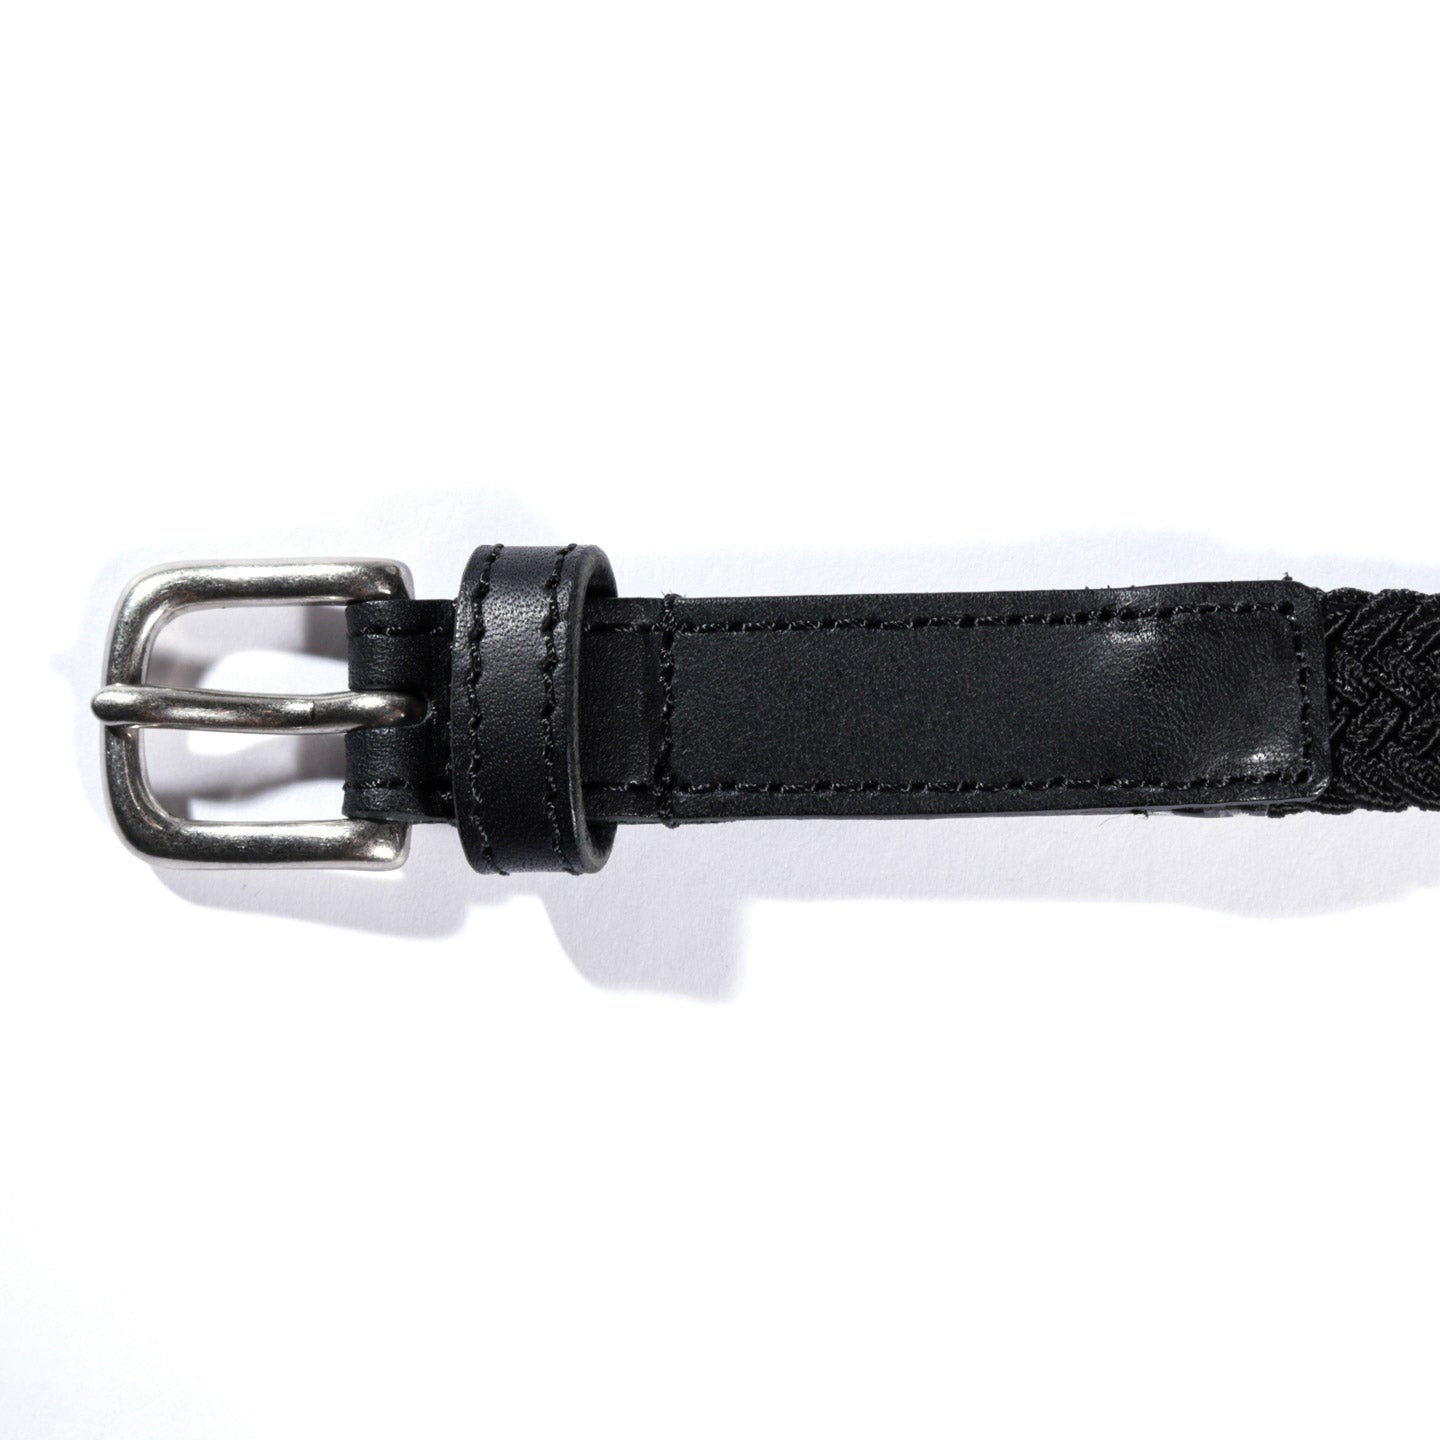 STILL BY HAND STRETCHABLE BELT BLACK